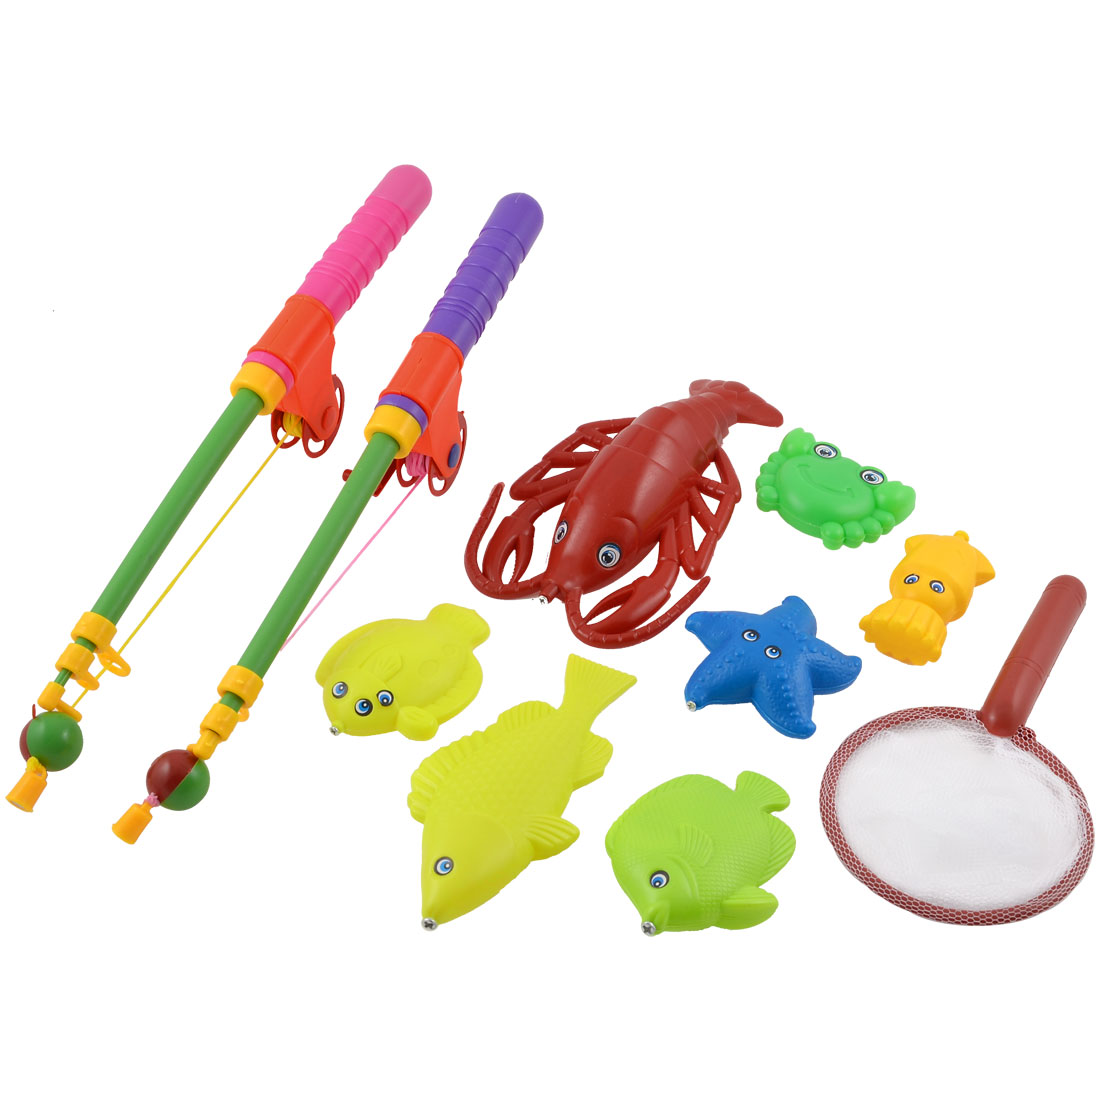 Children Colorful Plastic Magnet Fish Starfish Fishing Game Toy Set 10 in 1